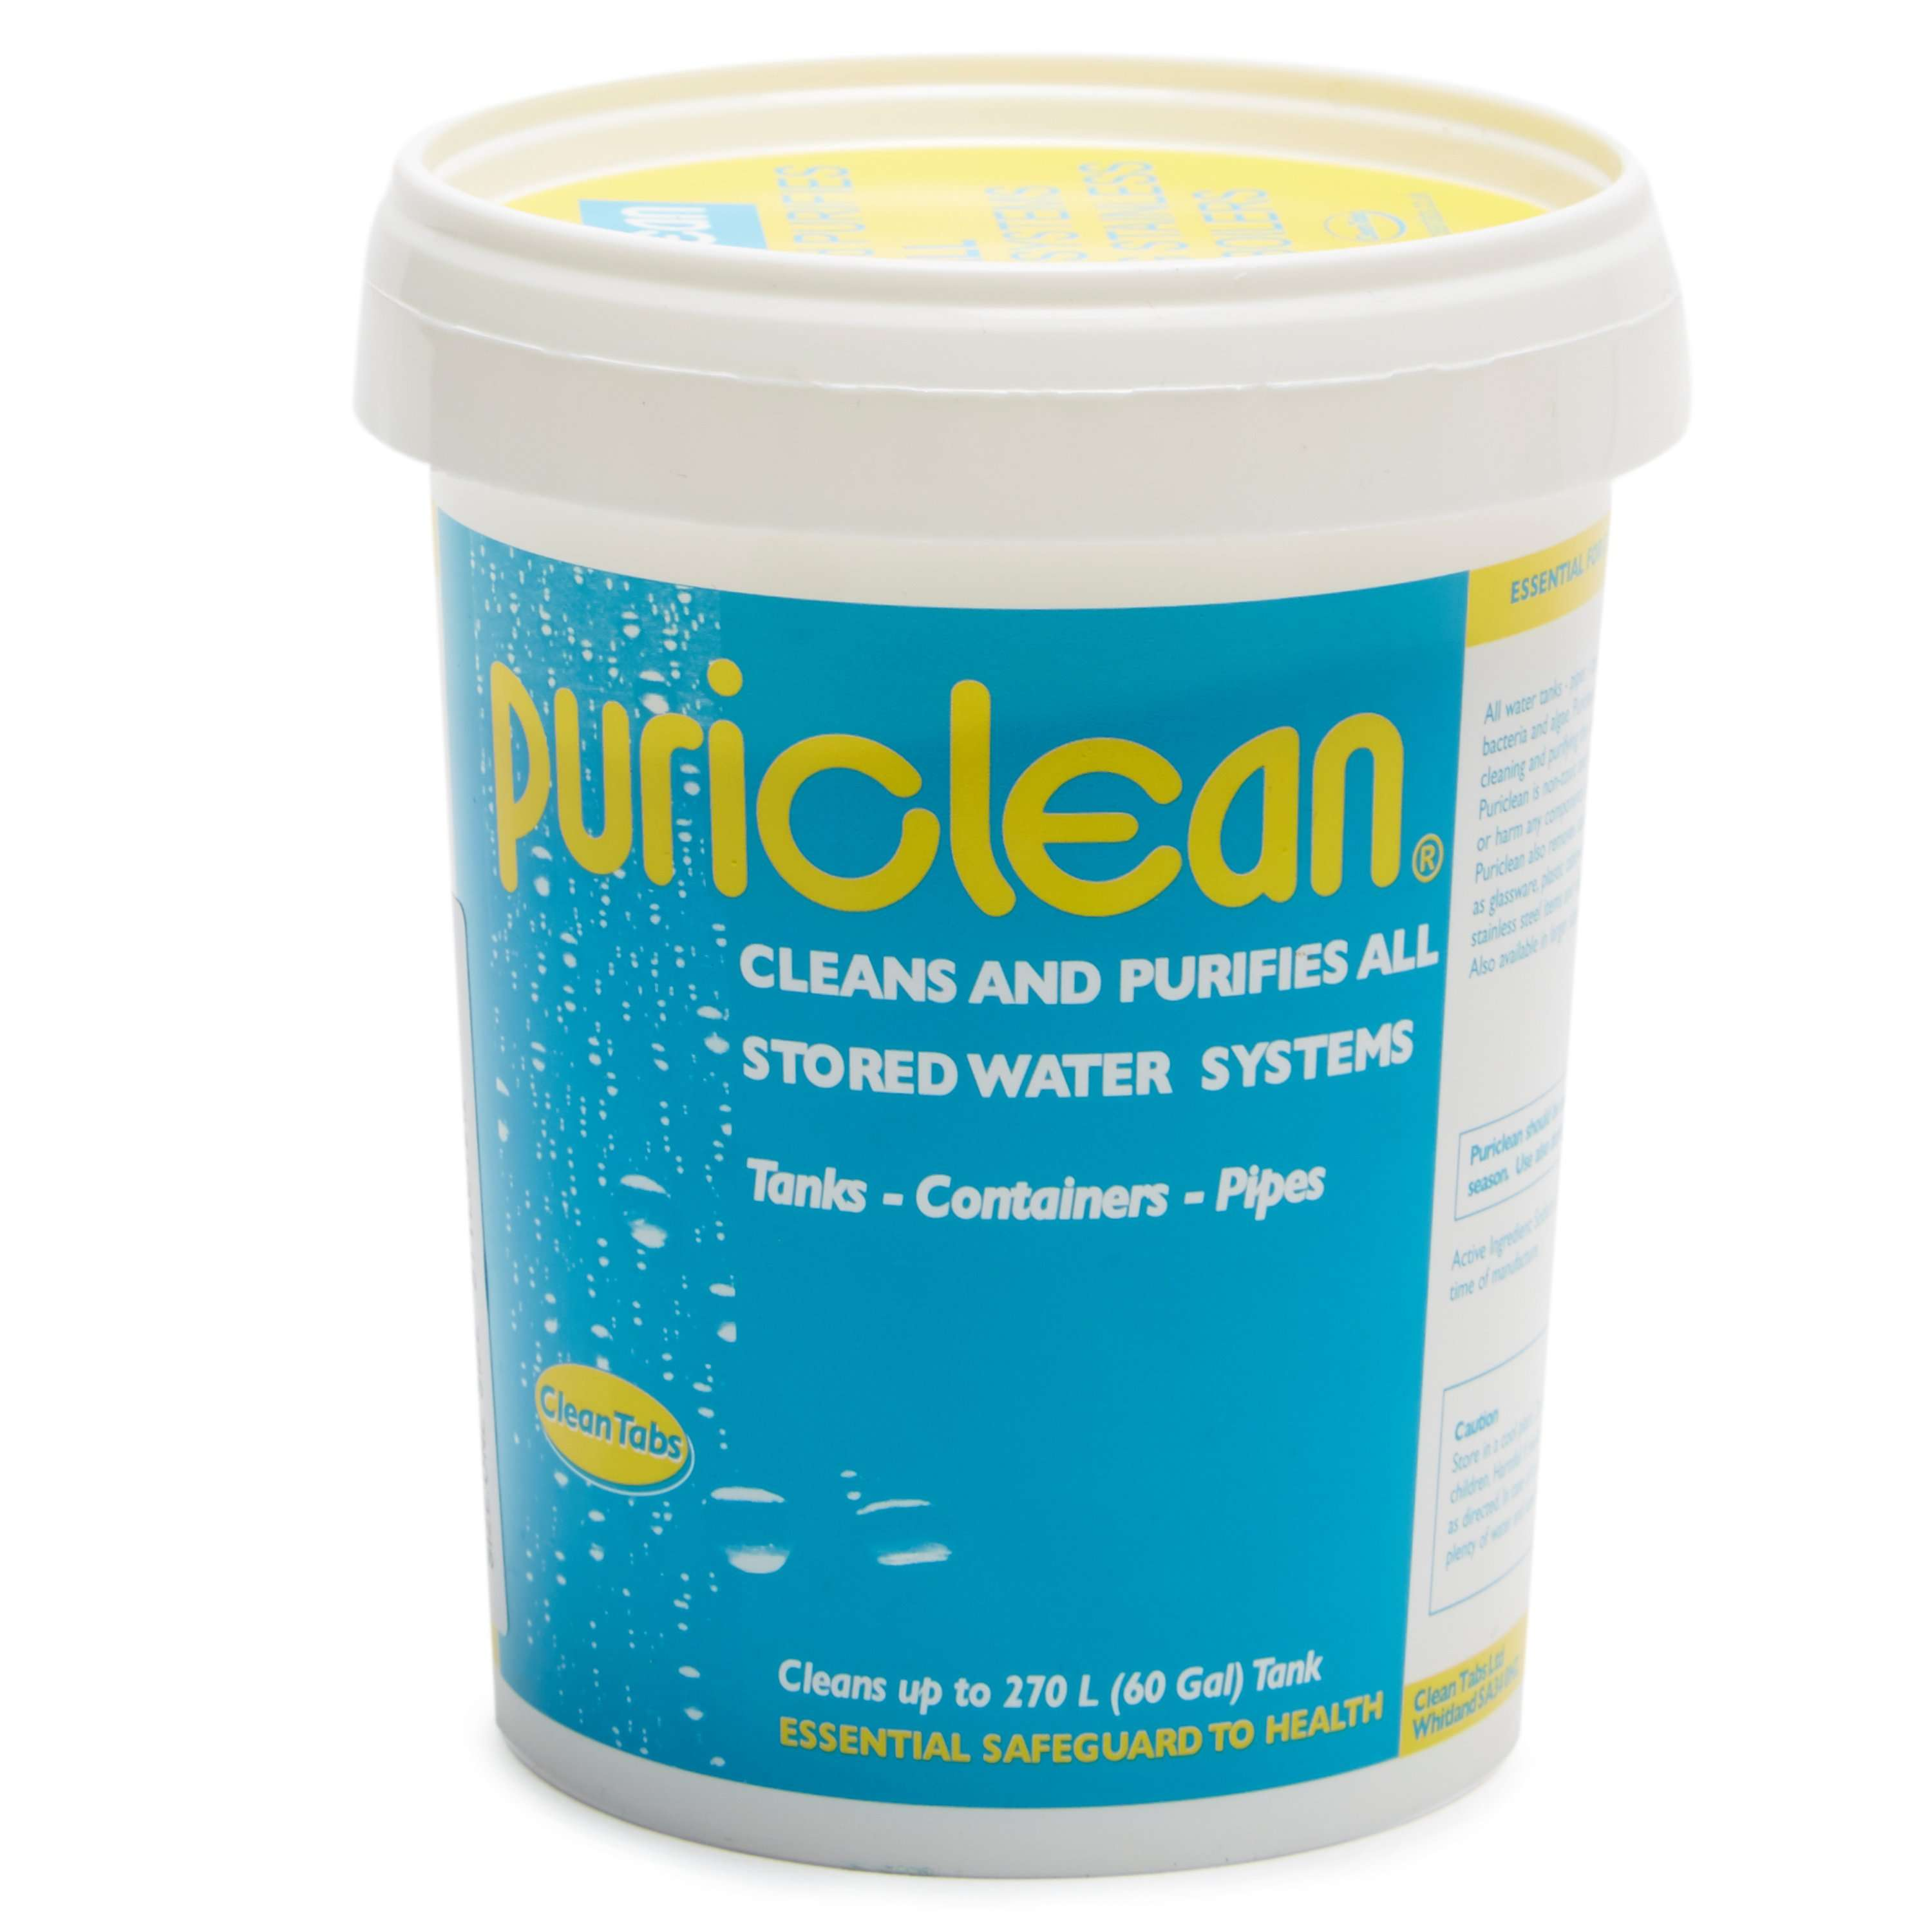 QUEST Puriclean 400g